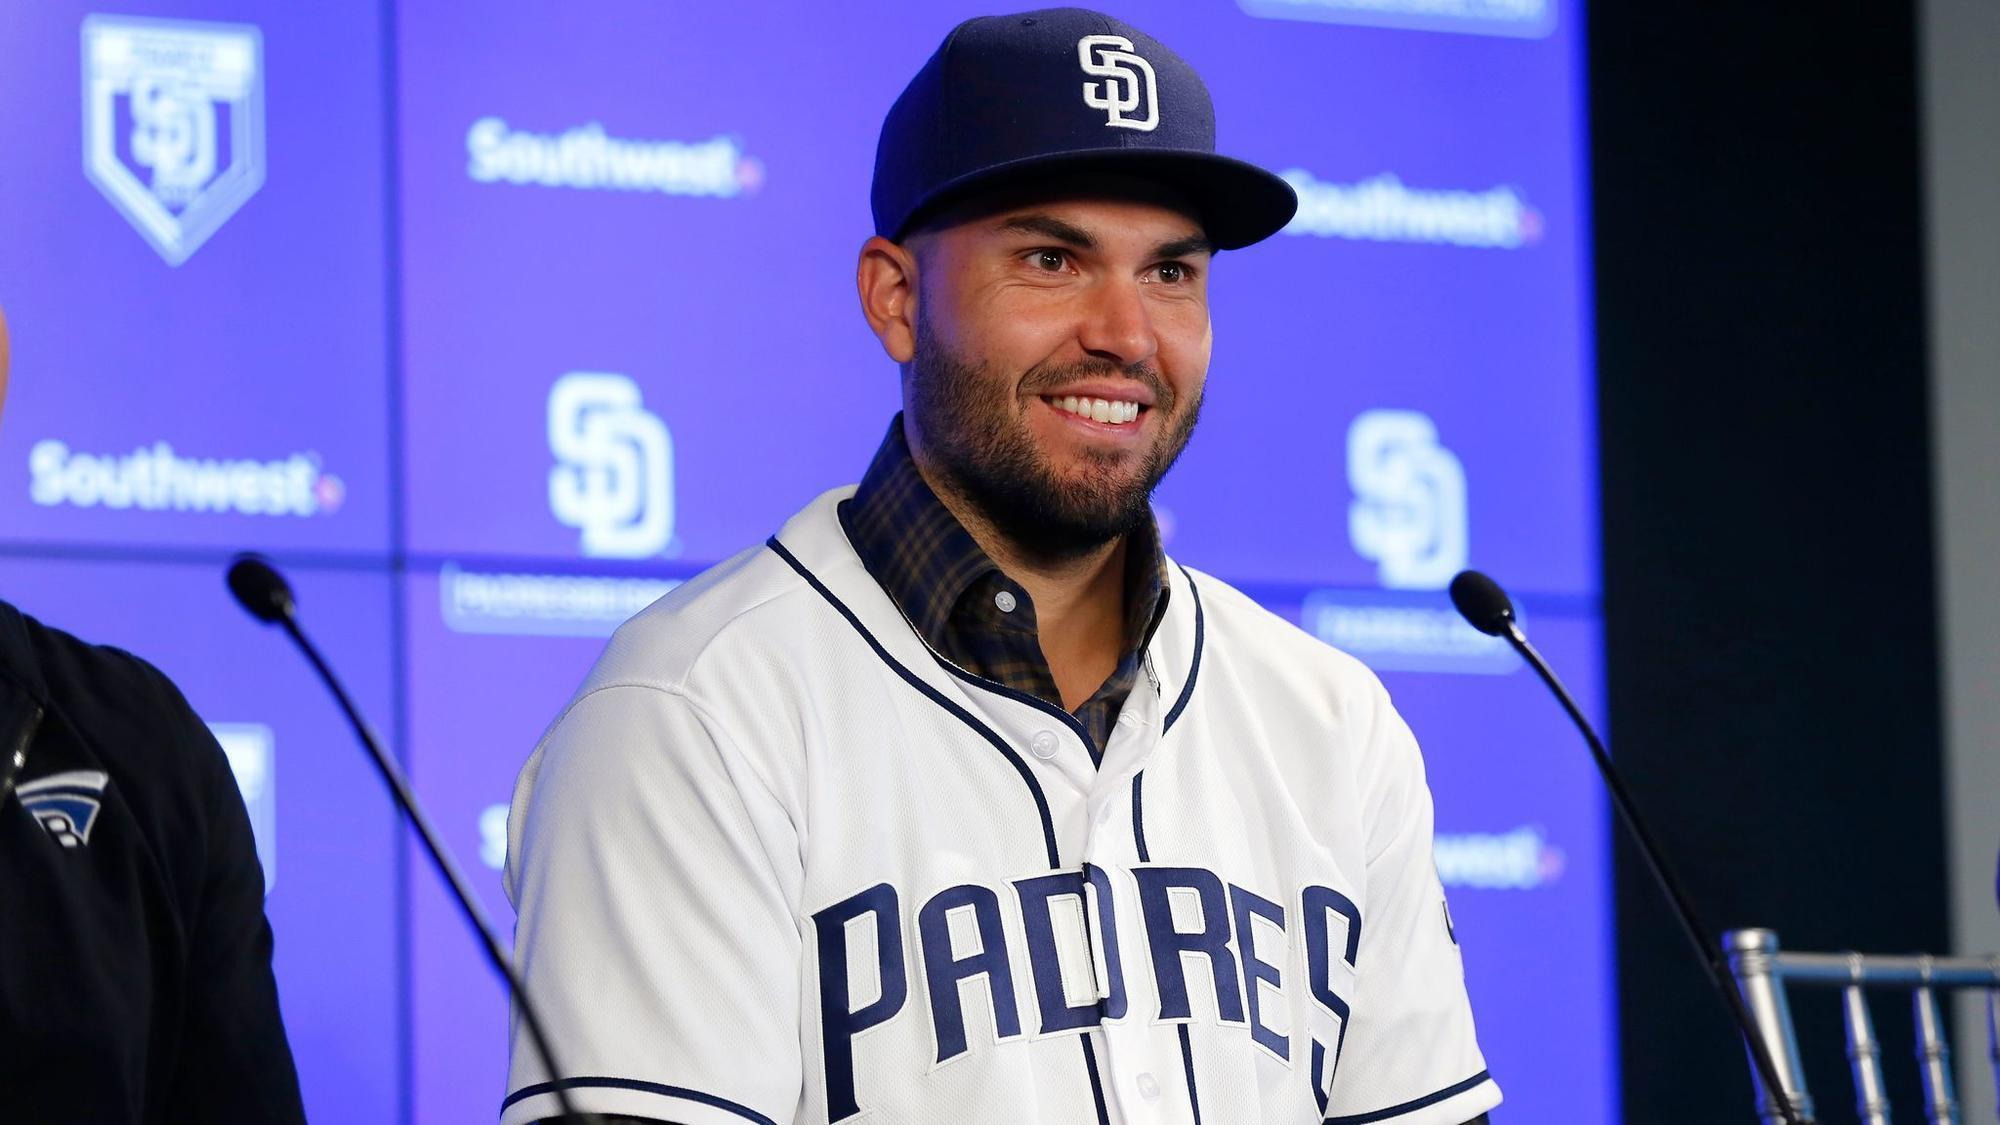 reputable site db61b 8a6c5 New Padre Hosmer eager for 'great moments' in San Diego ...